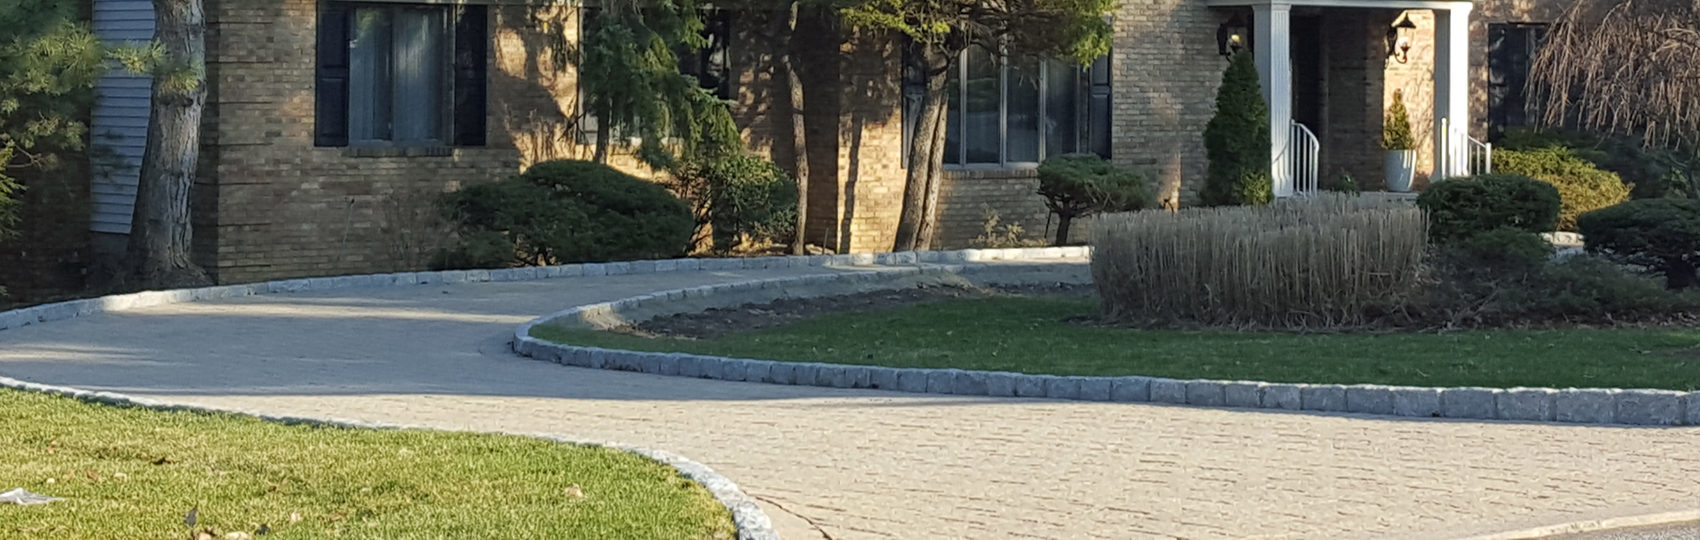 Hardscaping - paver driveway in Bergen County NJ